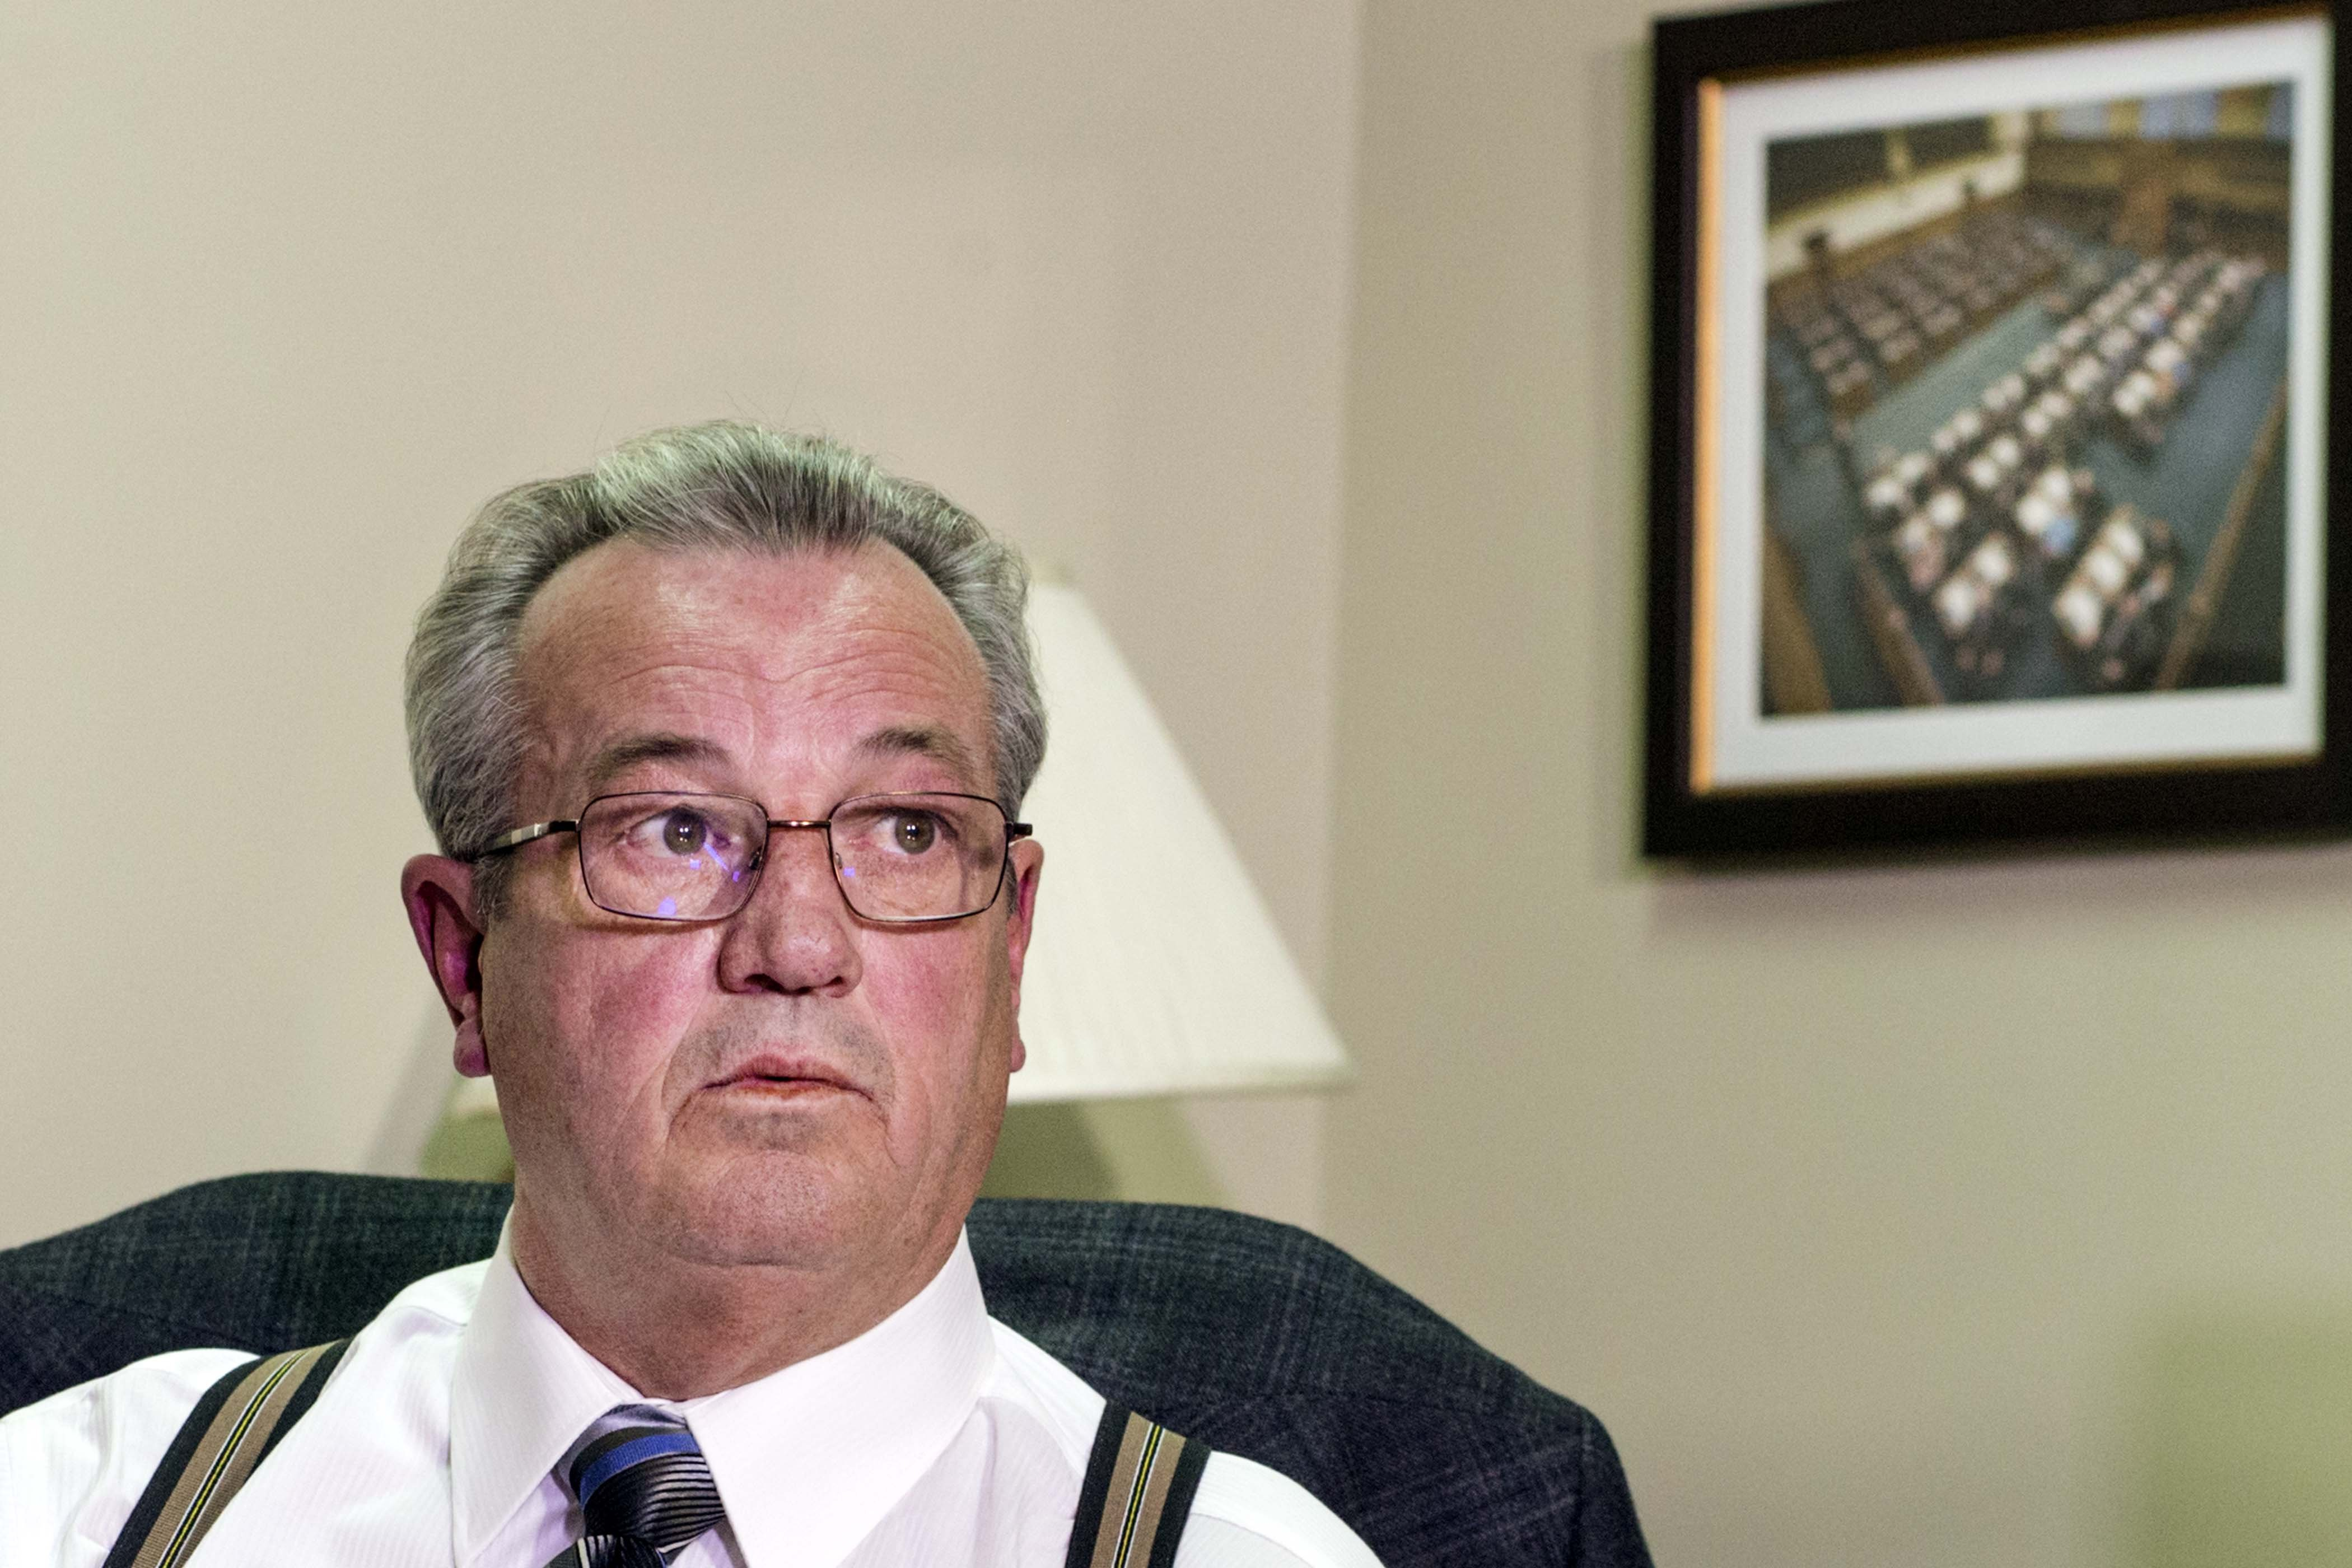 Constituents say Randy Hillier added them to anti-lockdown mailing lists without consent